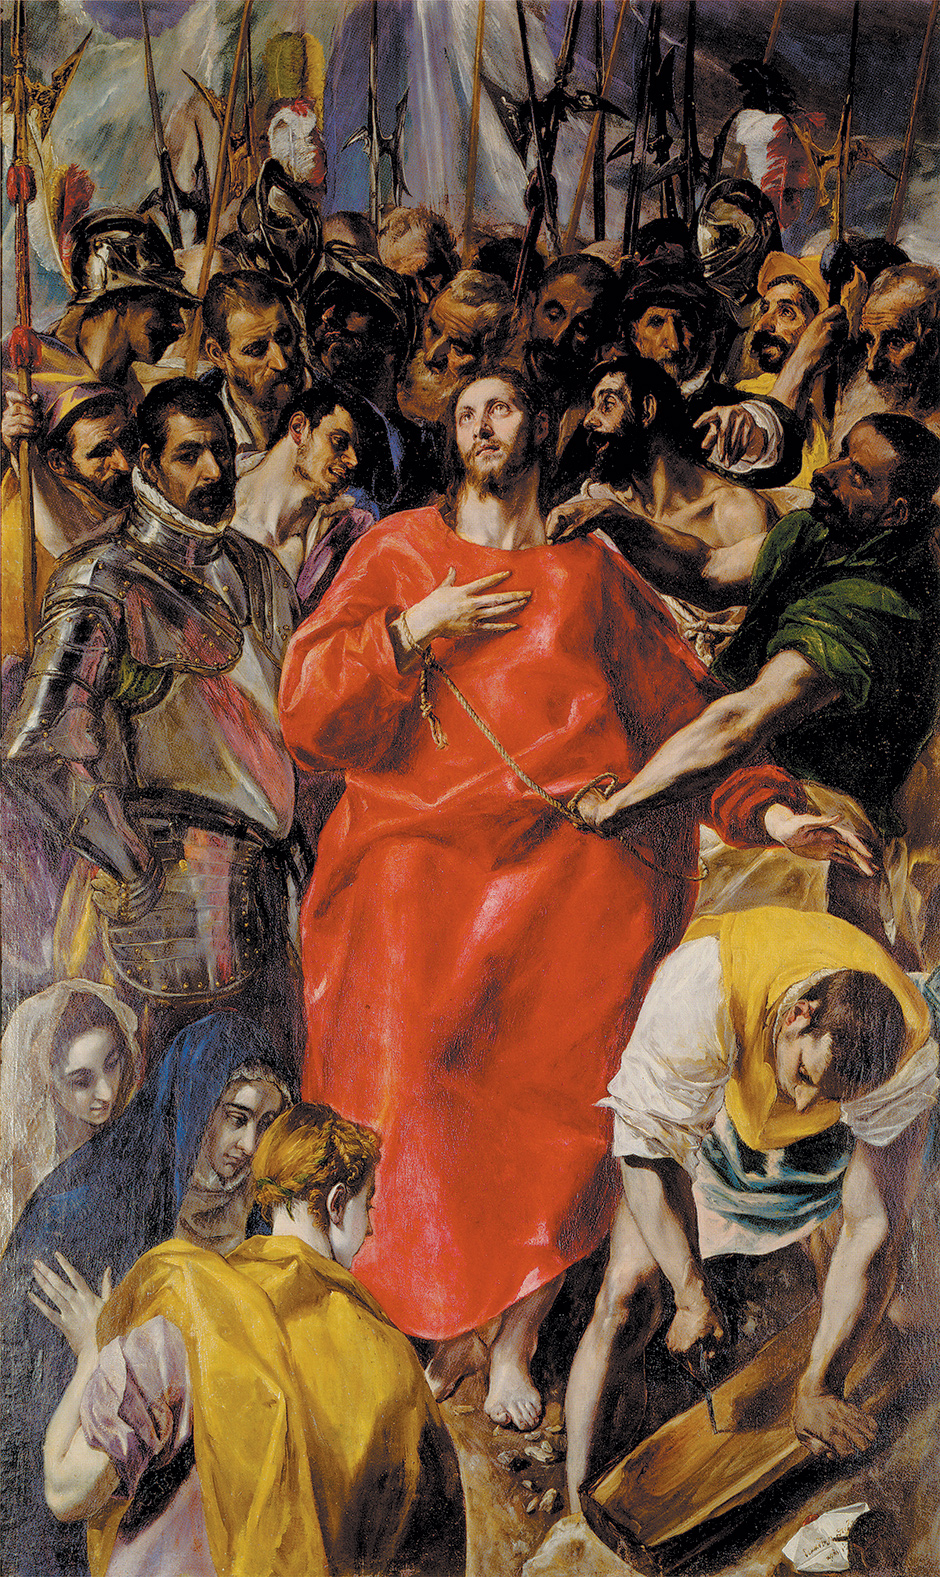 El Greco, The Disrobing of Christ, 1577–1579 (Toledo Cathedral)